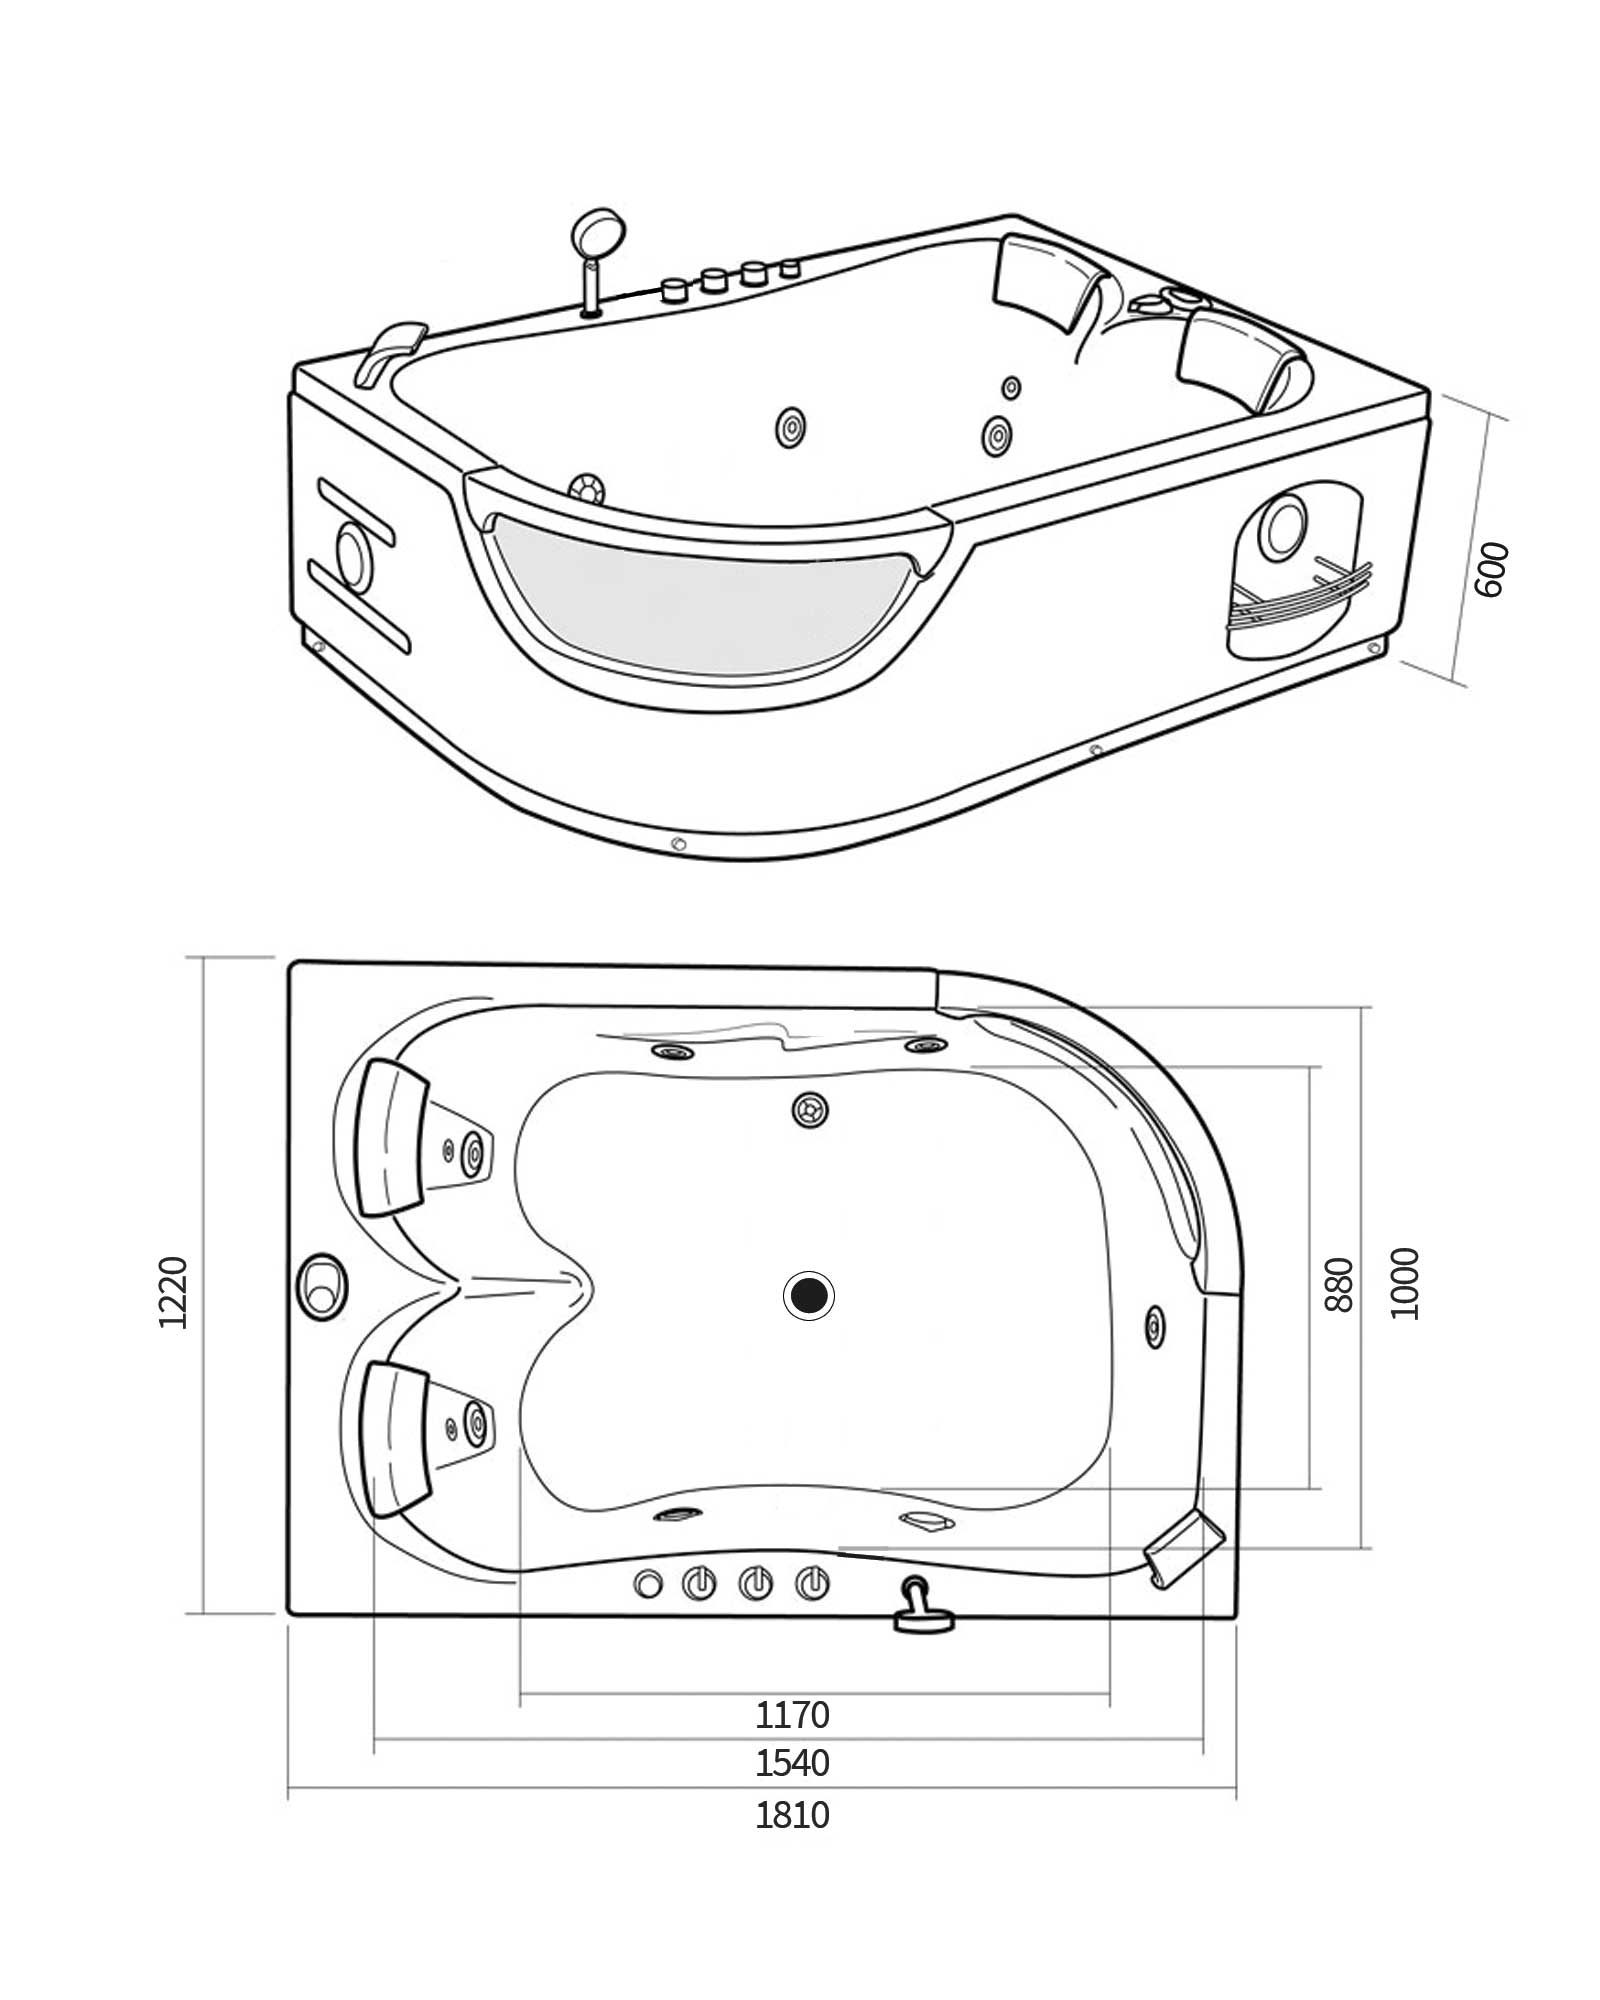 whirlpool bath tub spa corner bath bathtub hot tub orion 180 x 120 cm 8058340721033